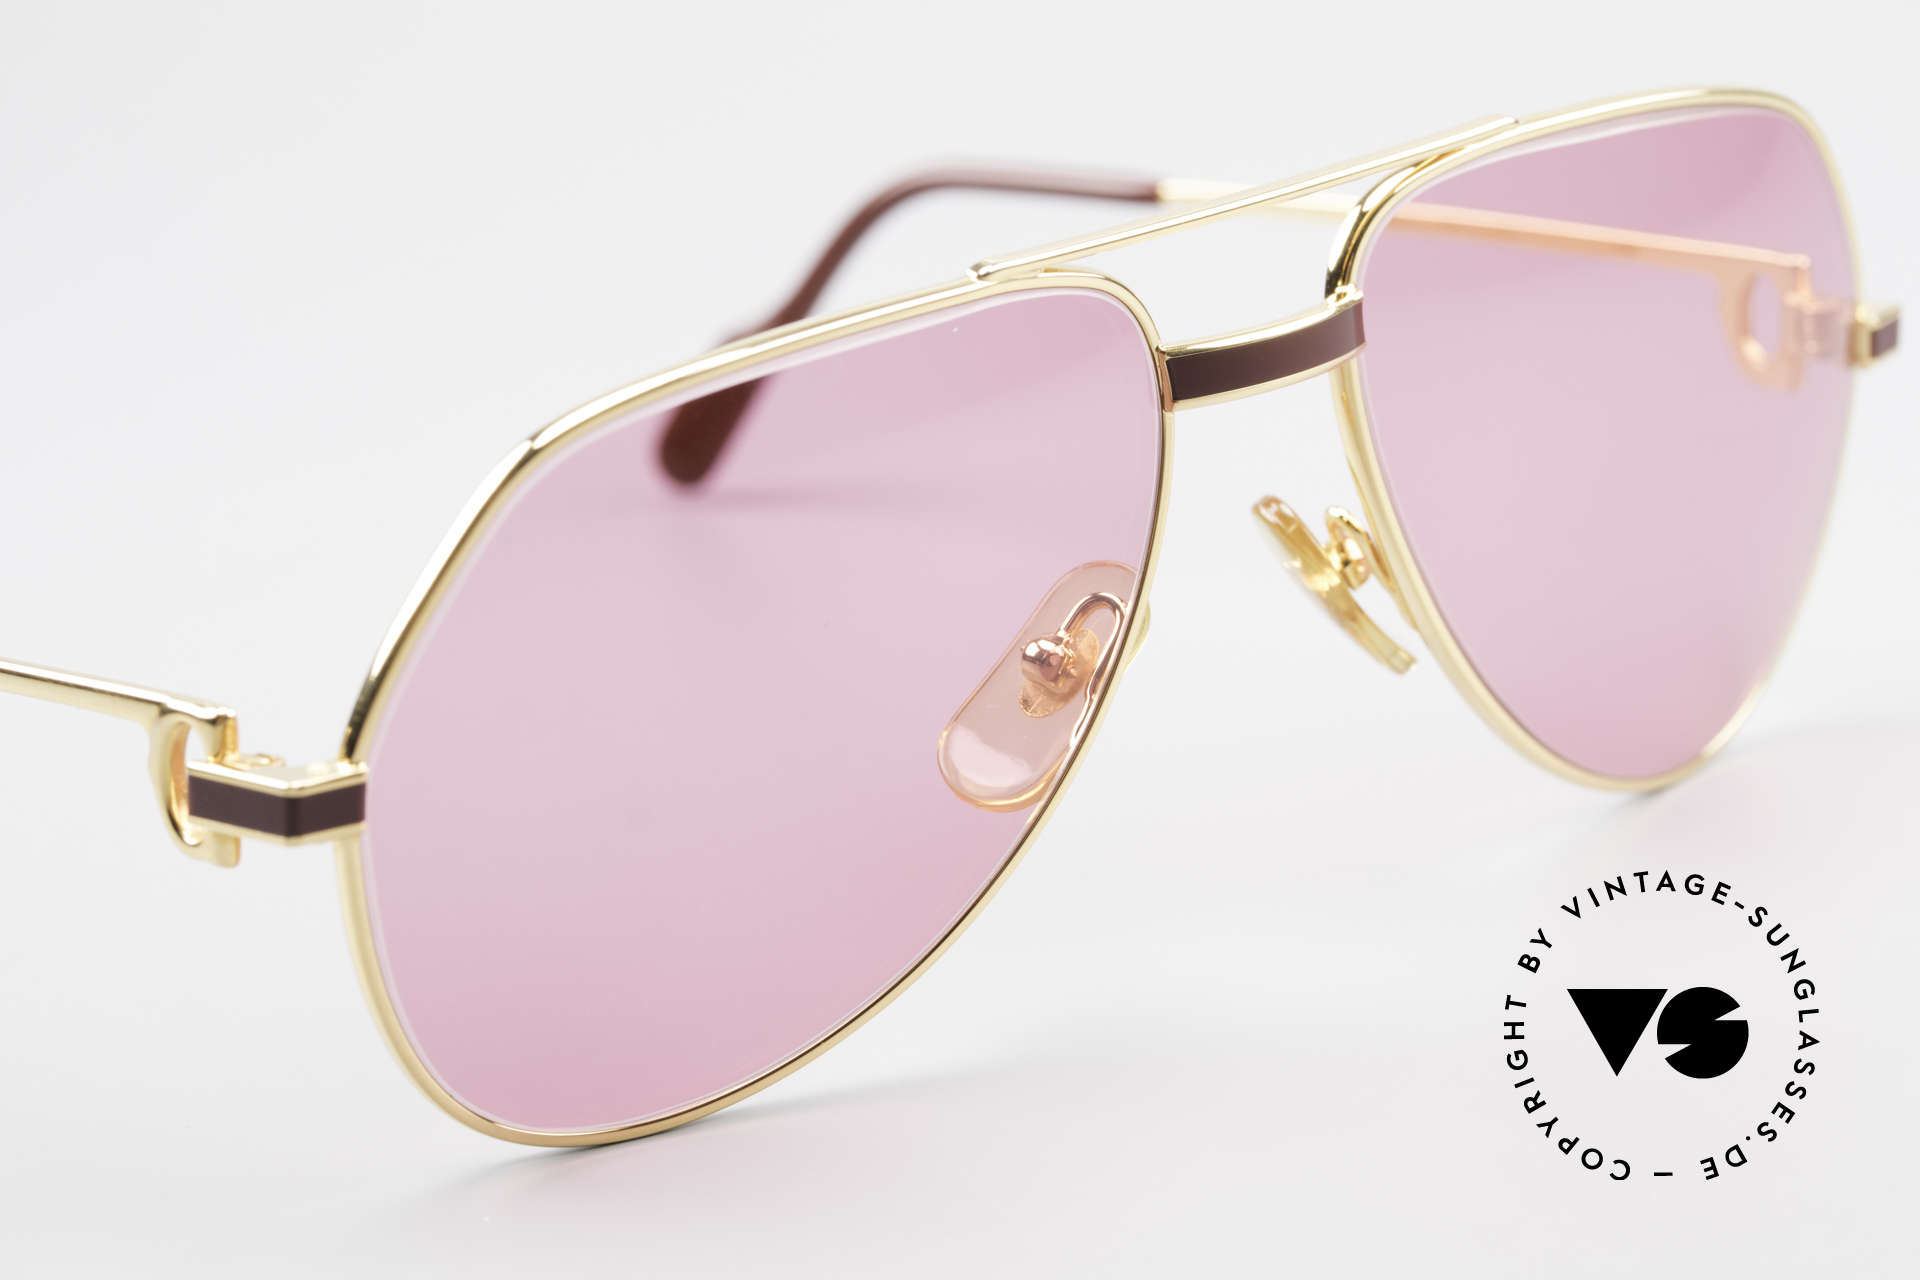 Cartier Vendome Laque - S 80's Luxury Sunglasses Pink, unworn rarity: hard to find in this condition, these days, Made for Men and Women